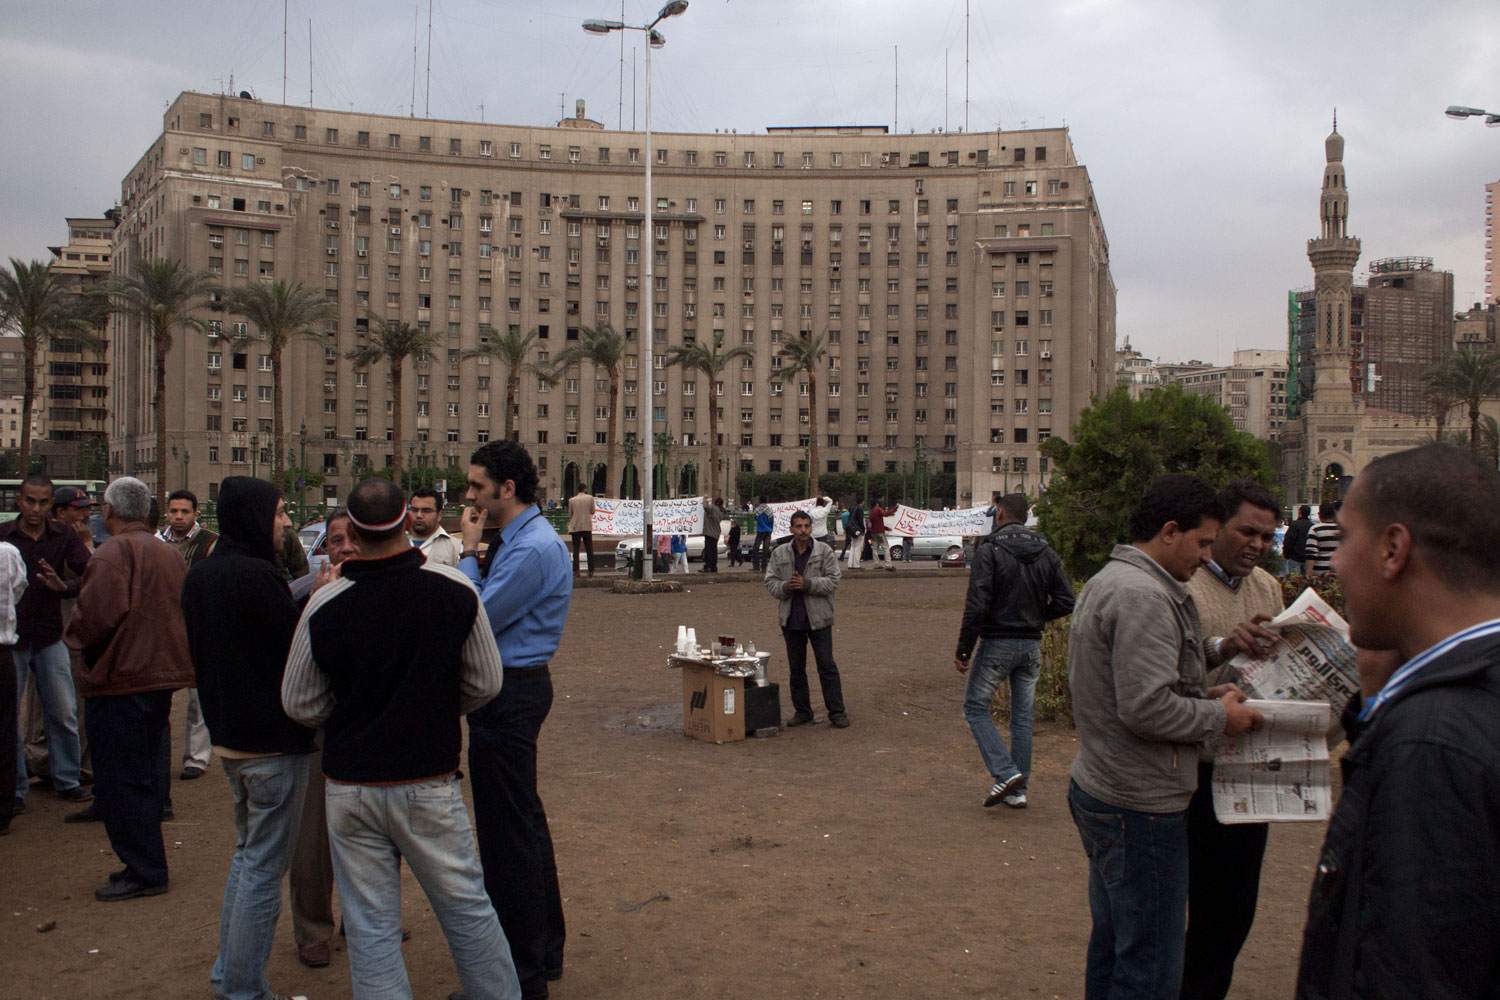 People gather daily at Tahrir Square to protest and discuss politics, April 3, 2011.